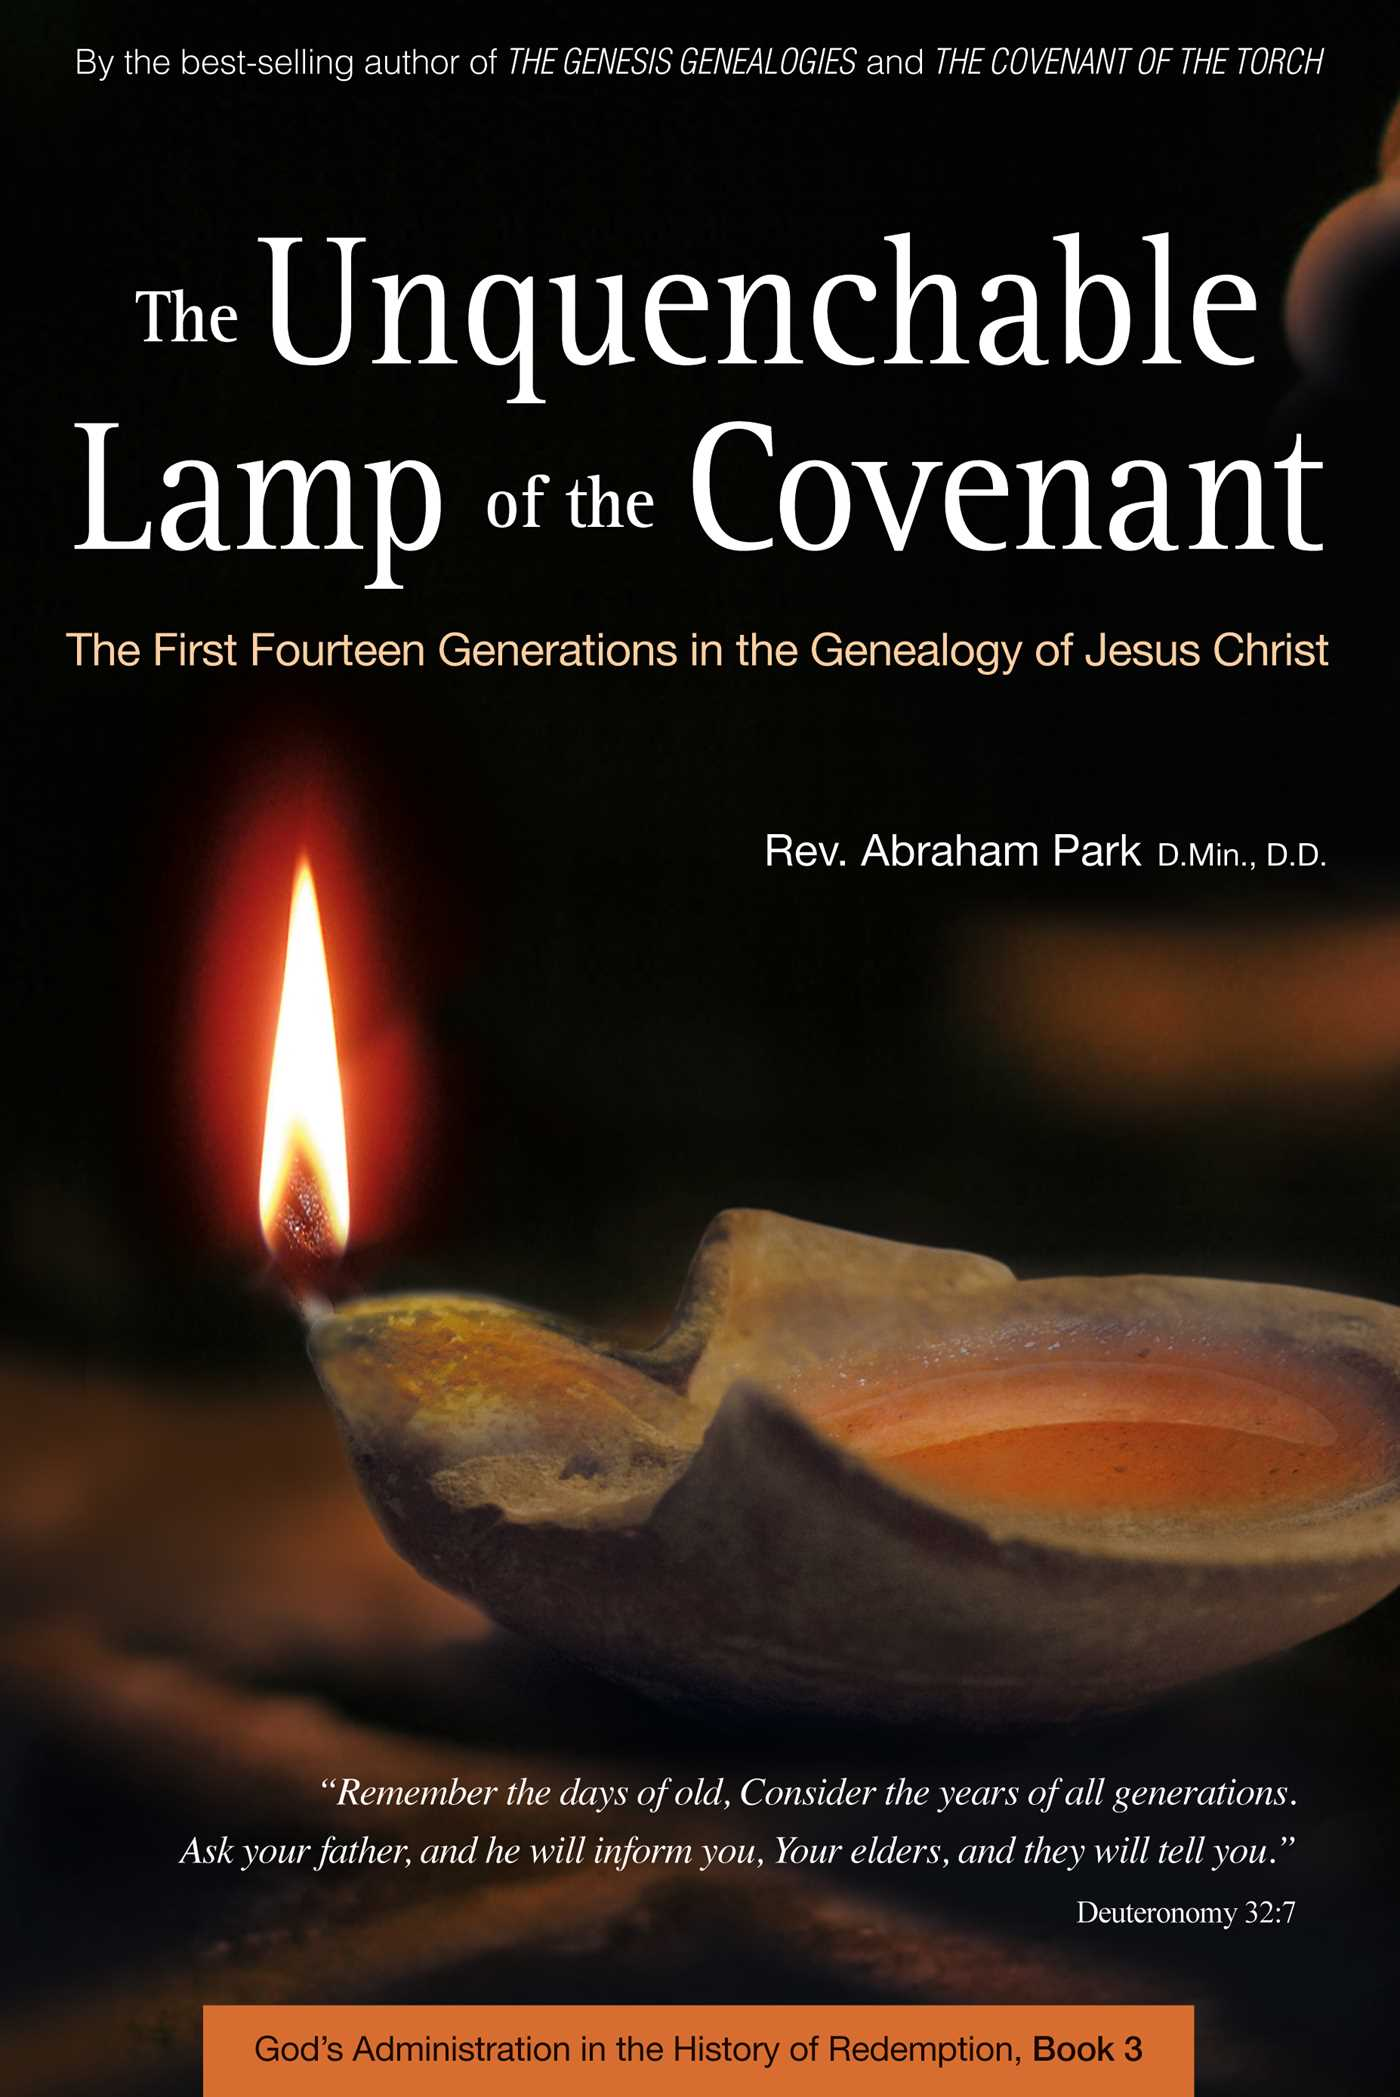 Unquenchable-lamp-of-the-covenant-9780794606701_hr